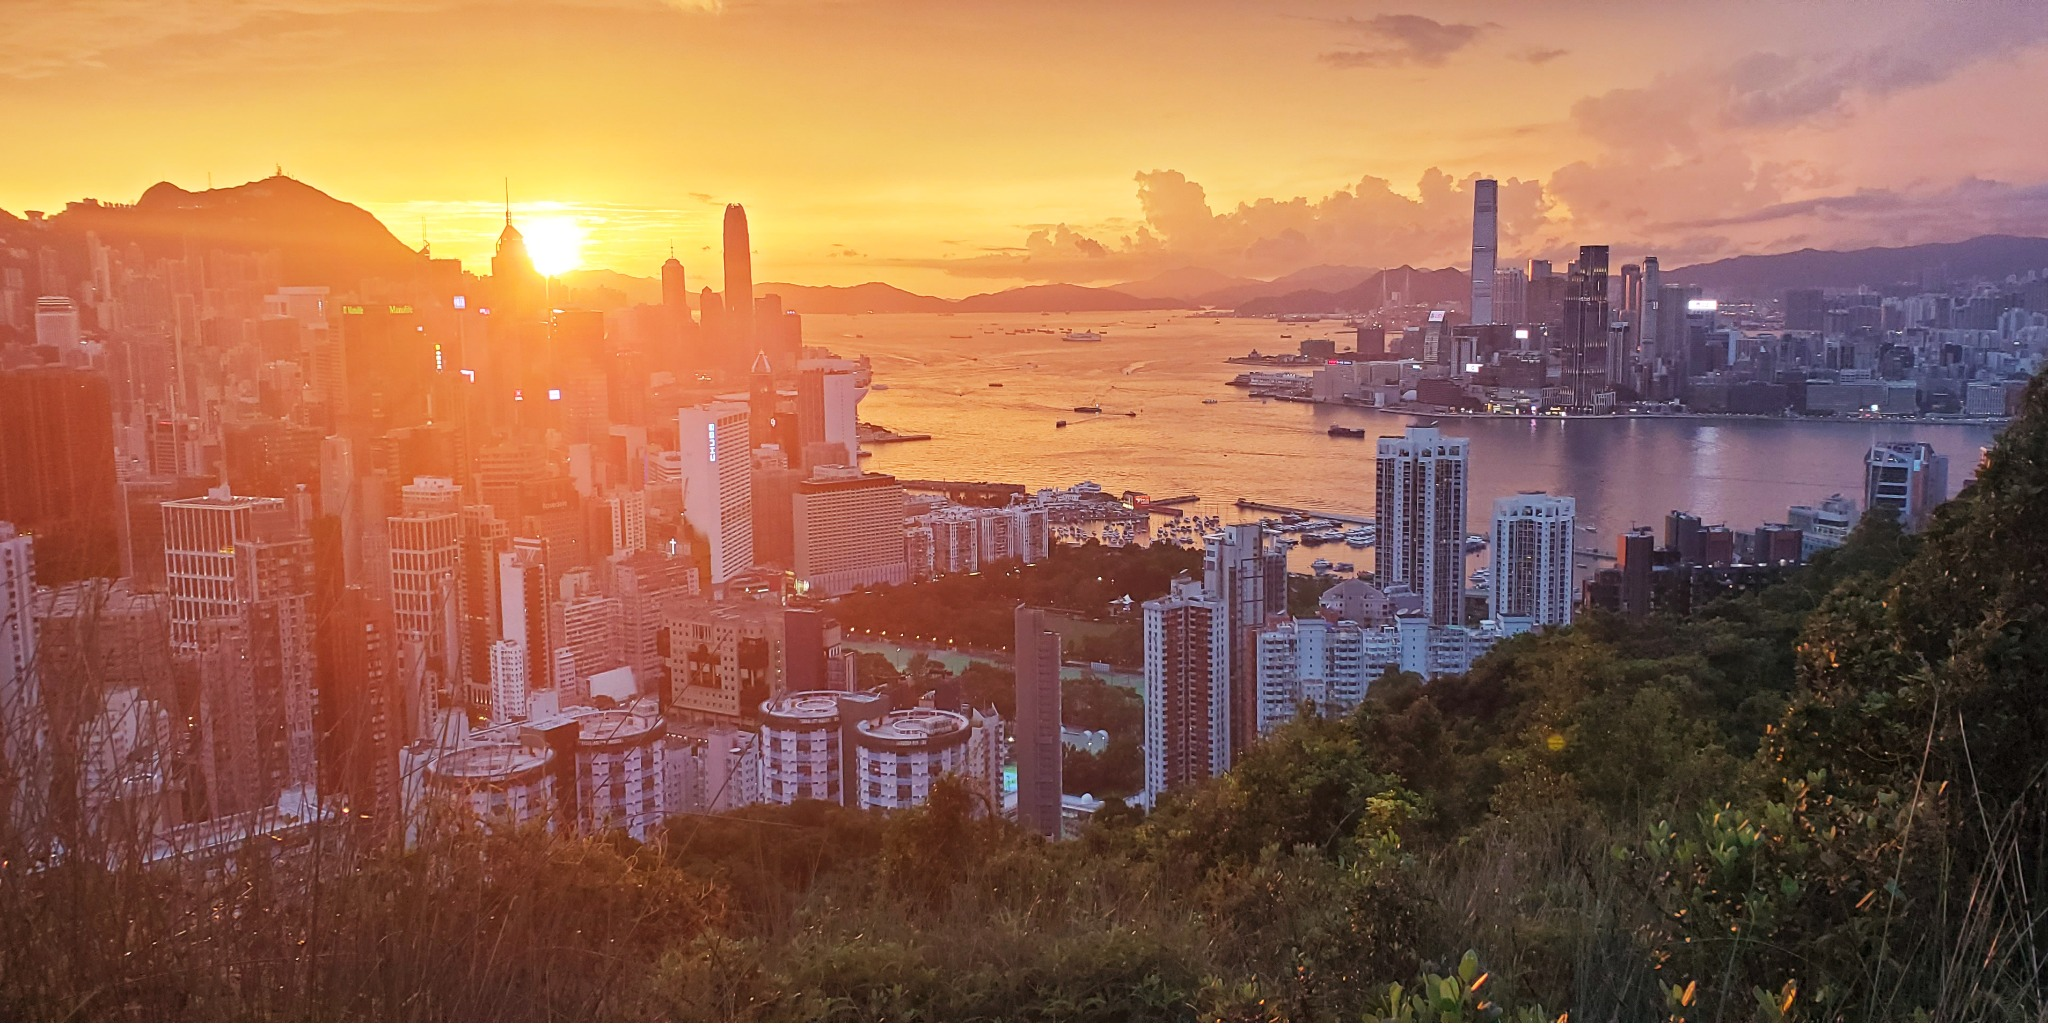 Trail Running or: How I learned to stop worrying and fall in love with Hong Kong again